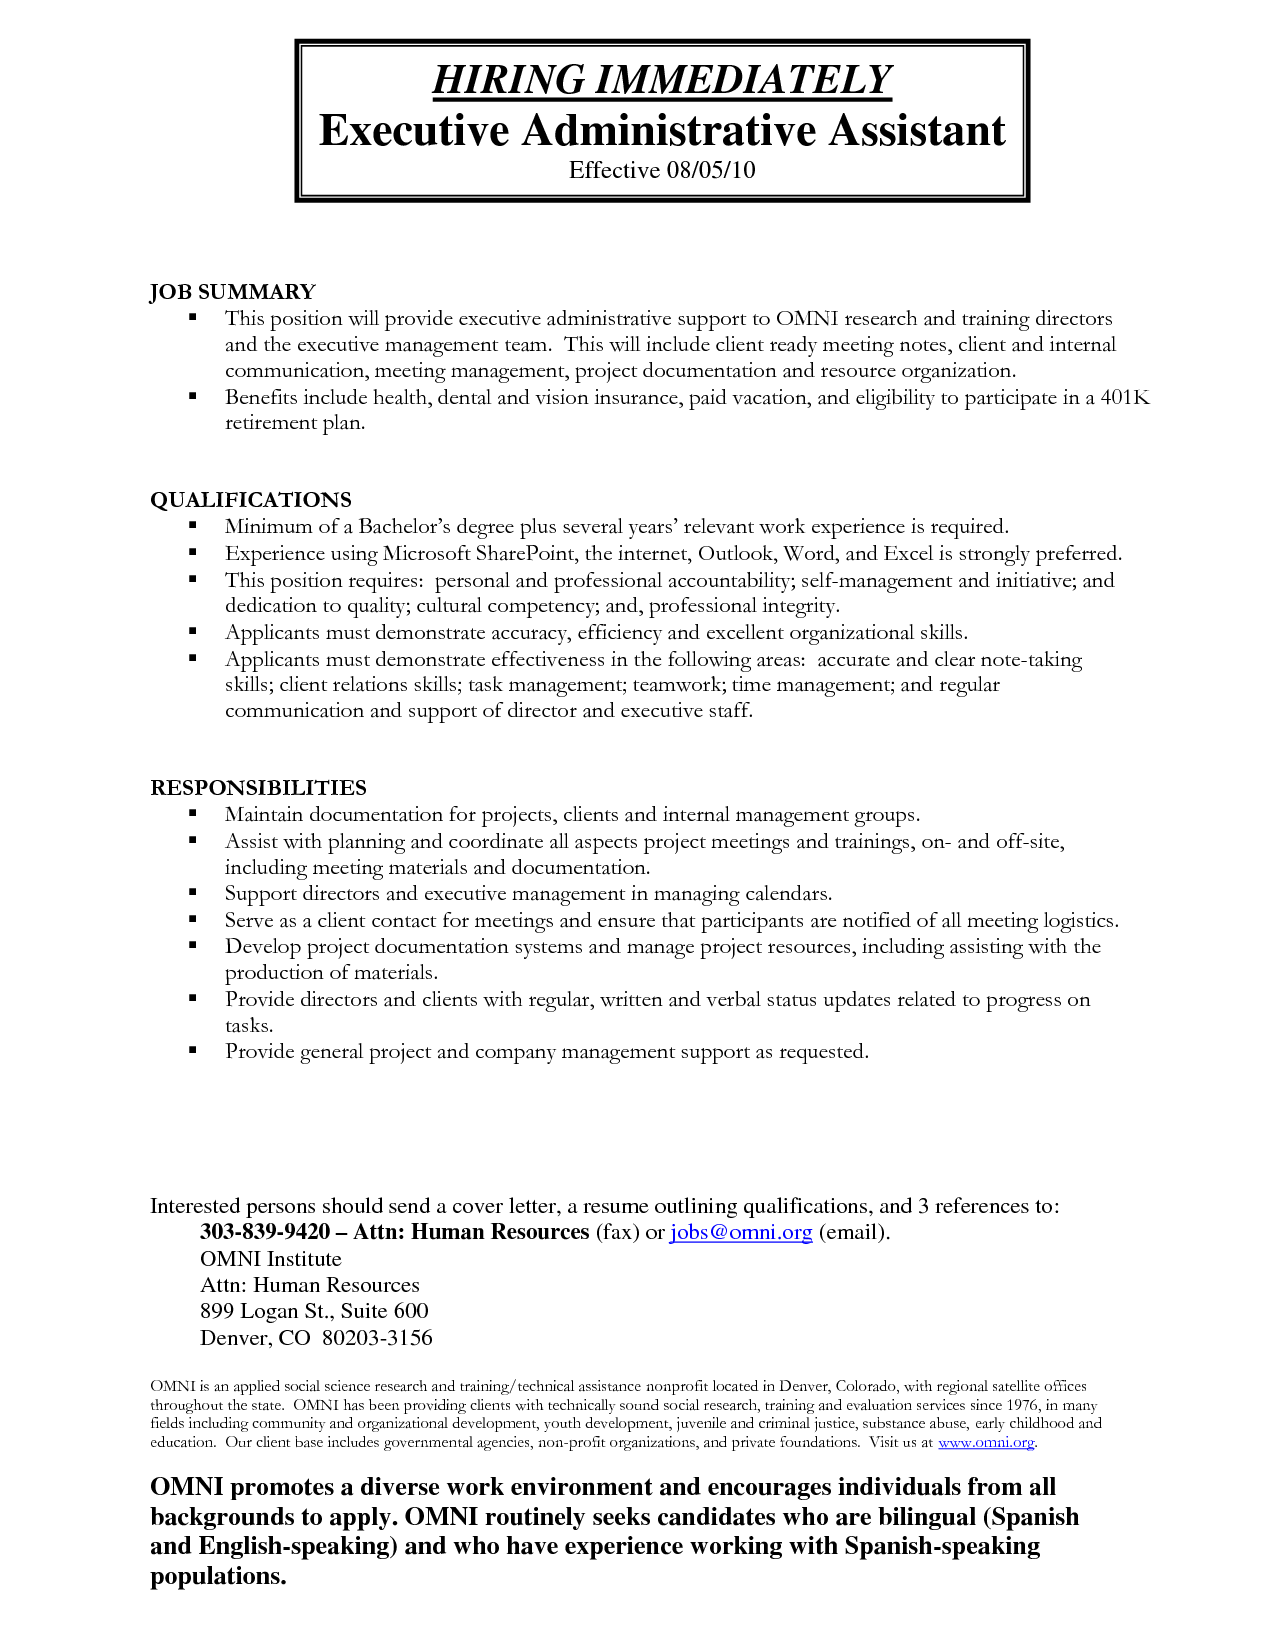 resume for administrative assistant skills